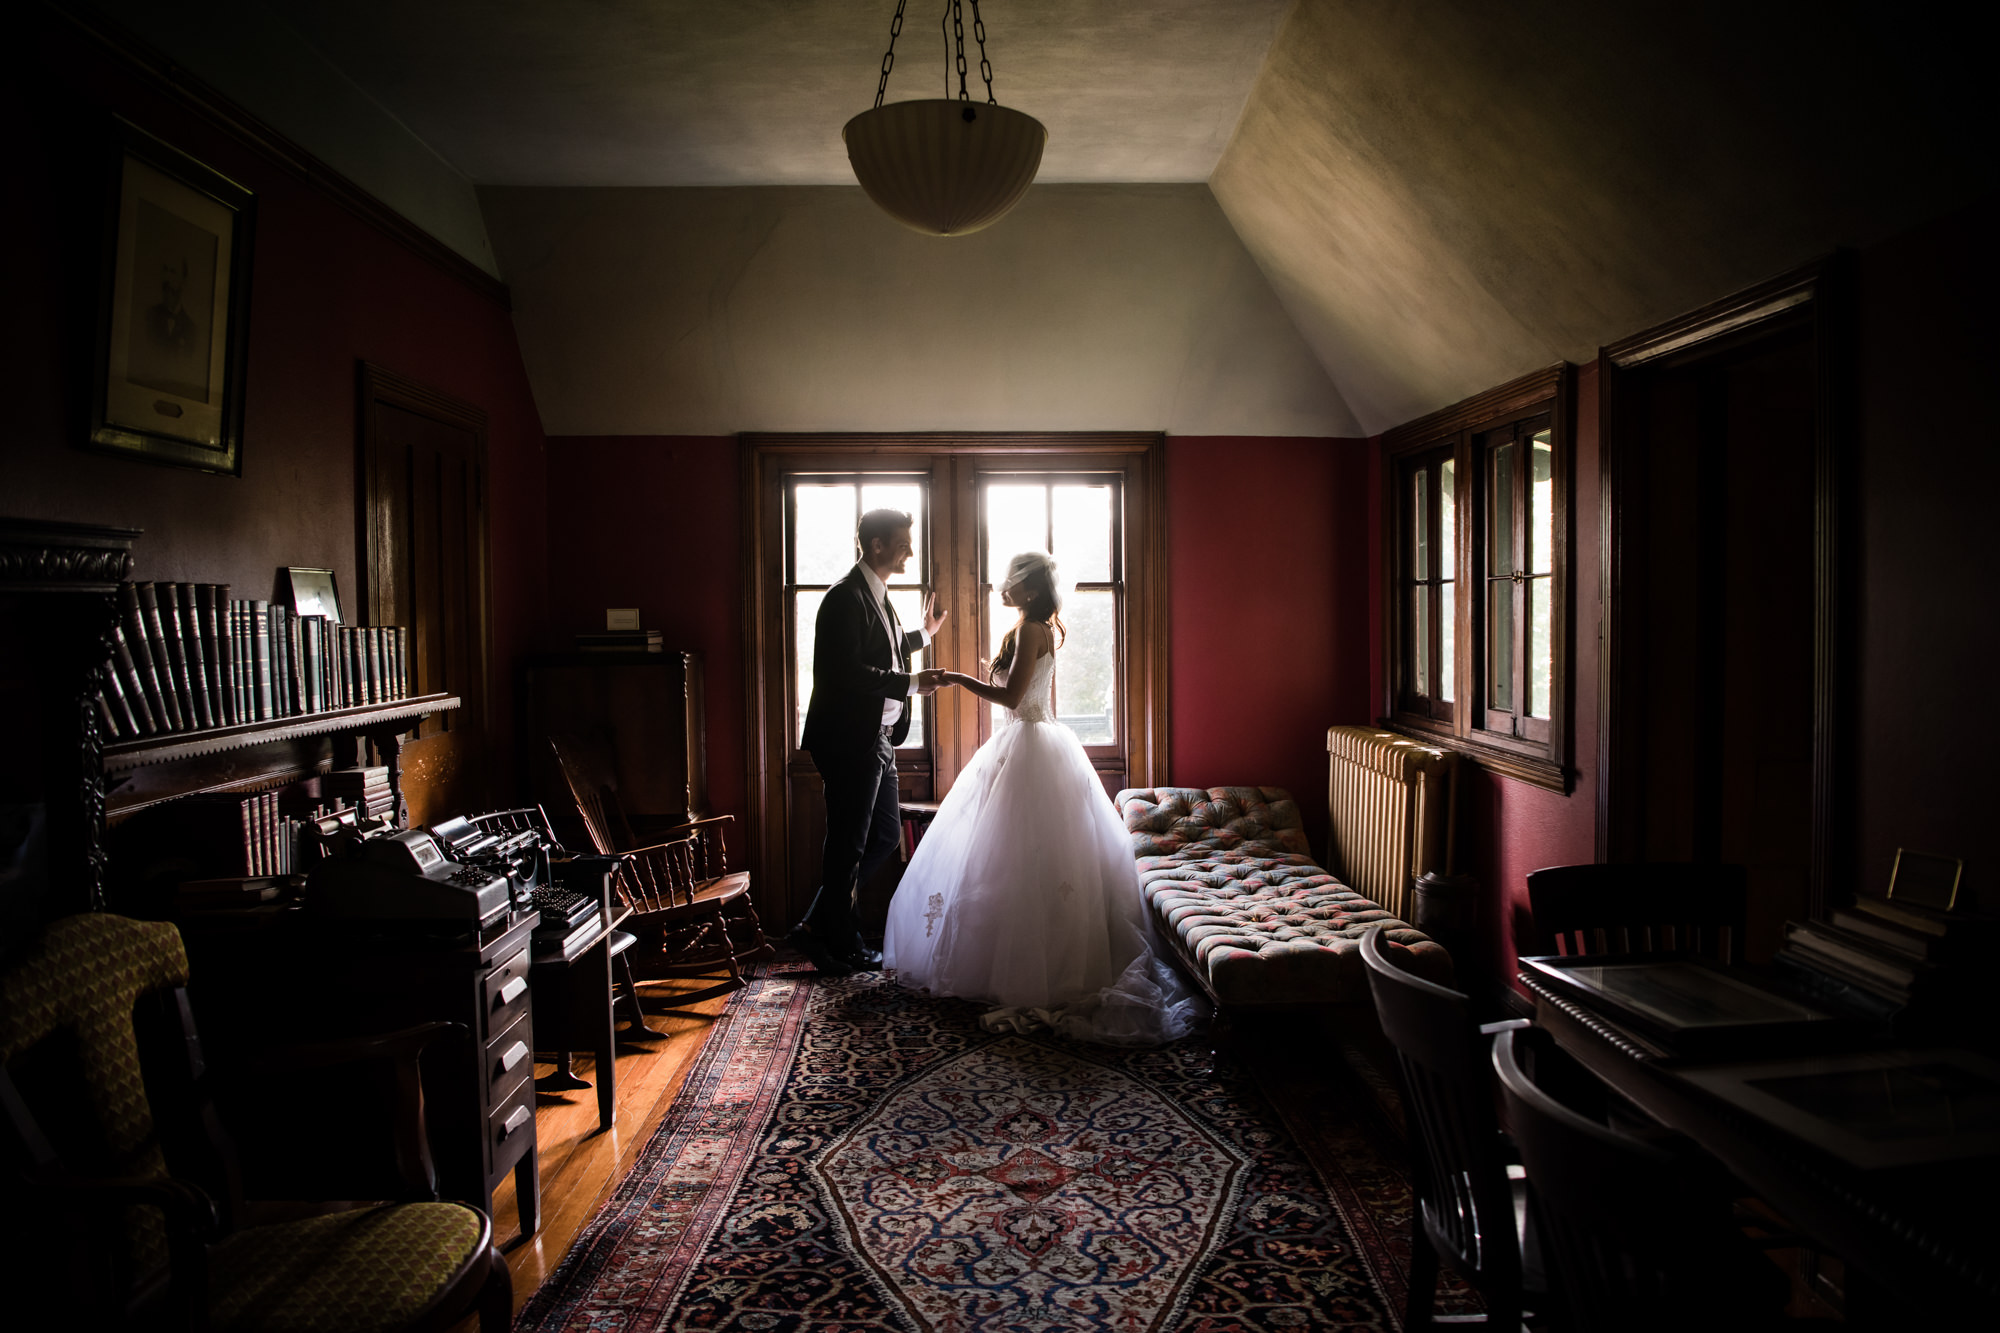 Couple profiles against windowlight by Cliff Mautner